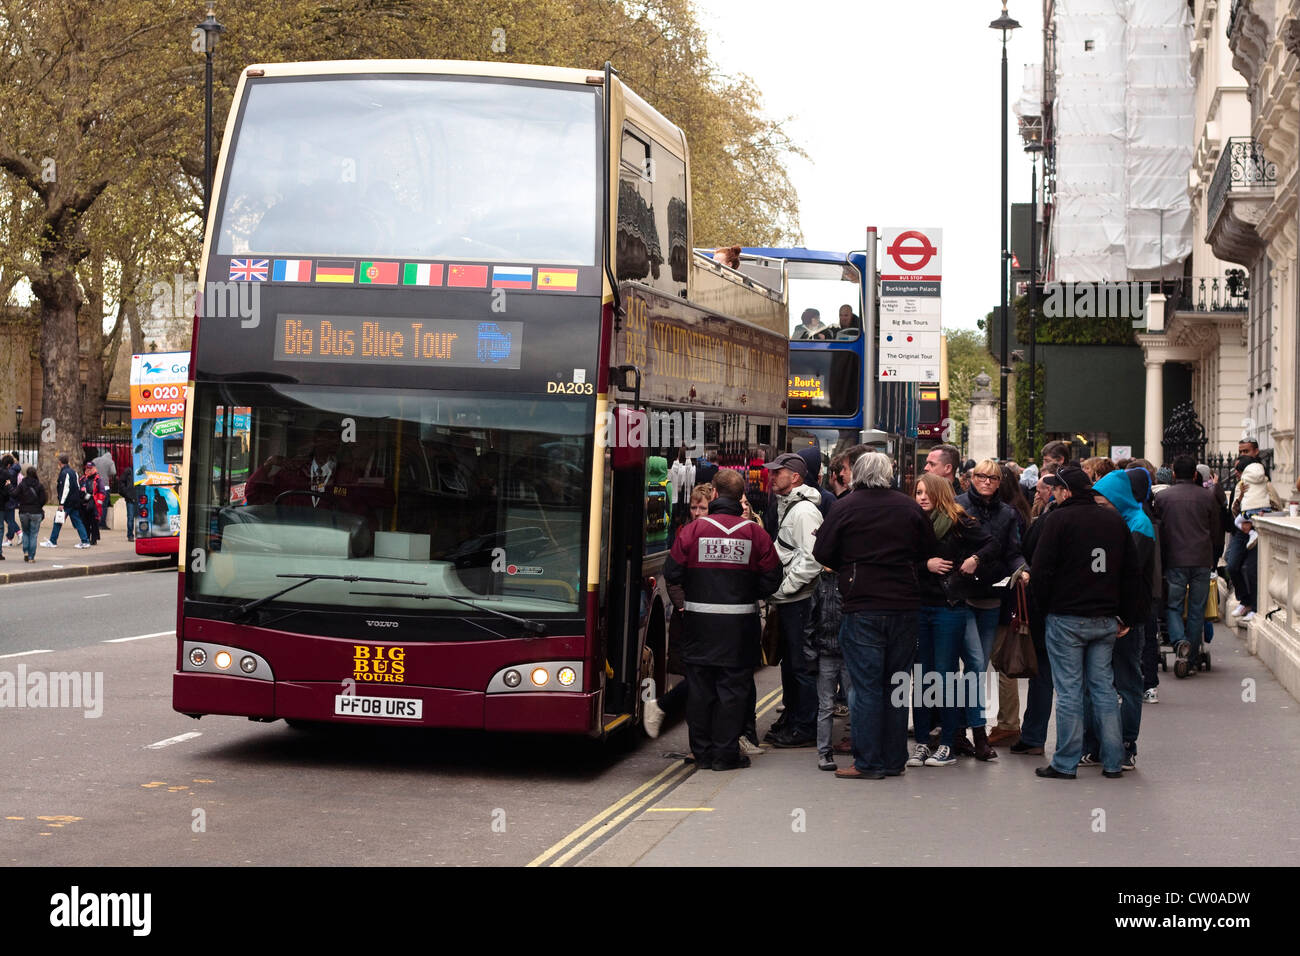 A parked Big Bus Tours bus with passengers getting ready to embark. London, UK - Stock Image